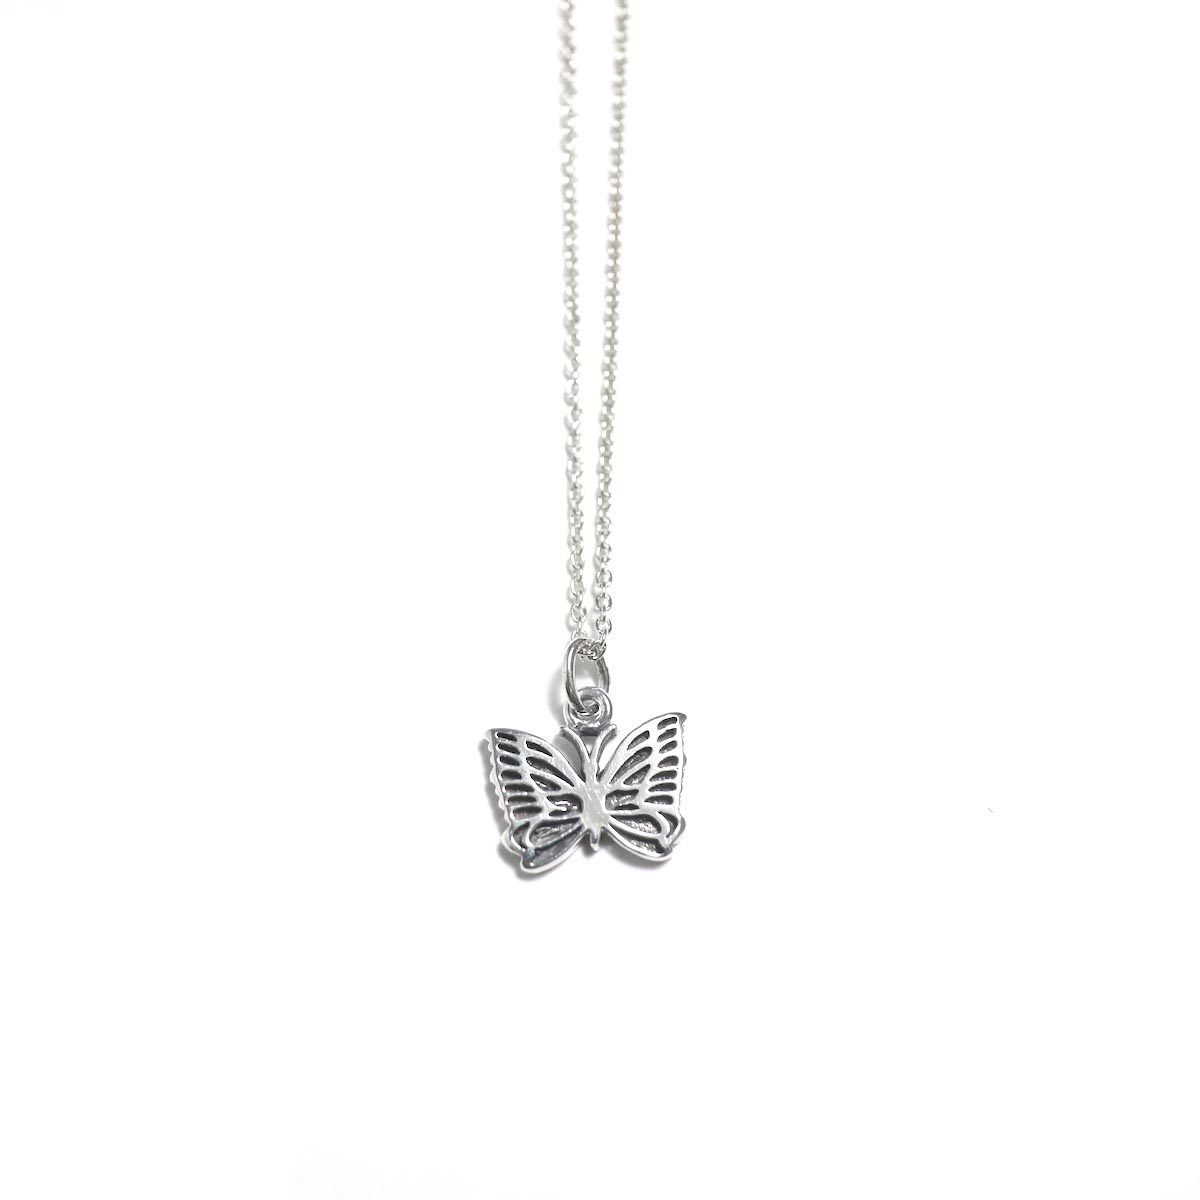 Needles / Pendant -925 Silver (Papillon)